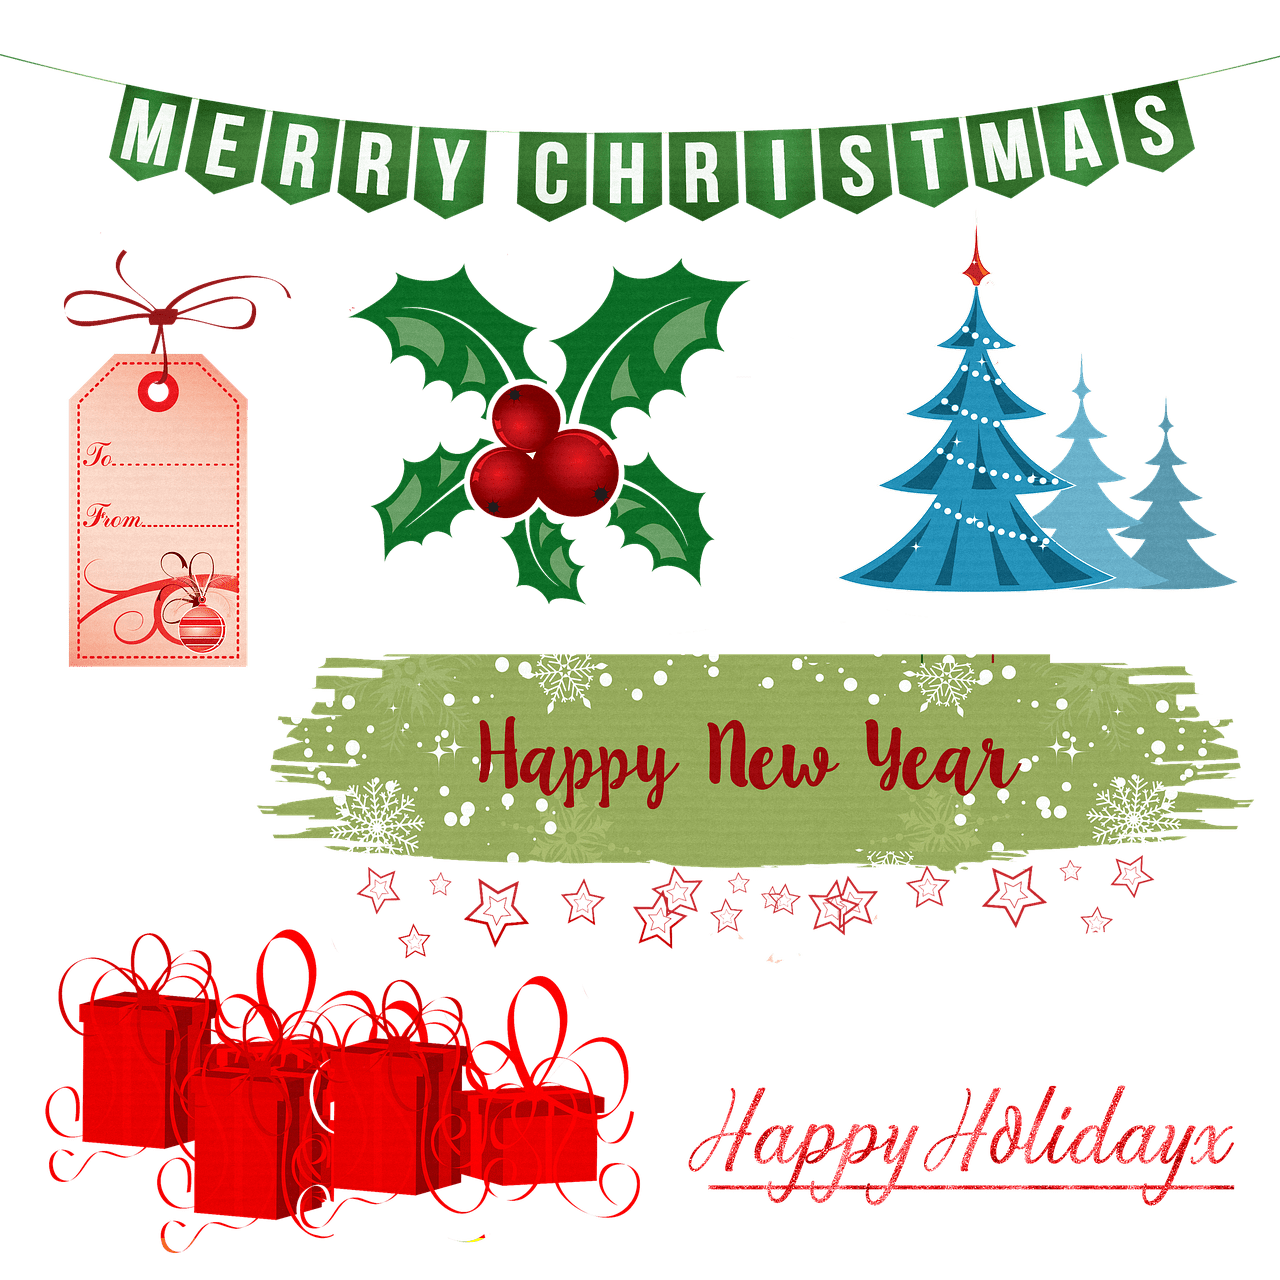 Wishing You A Merry Christmas And A Happy Healthy And Prosperous New Year